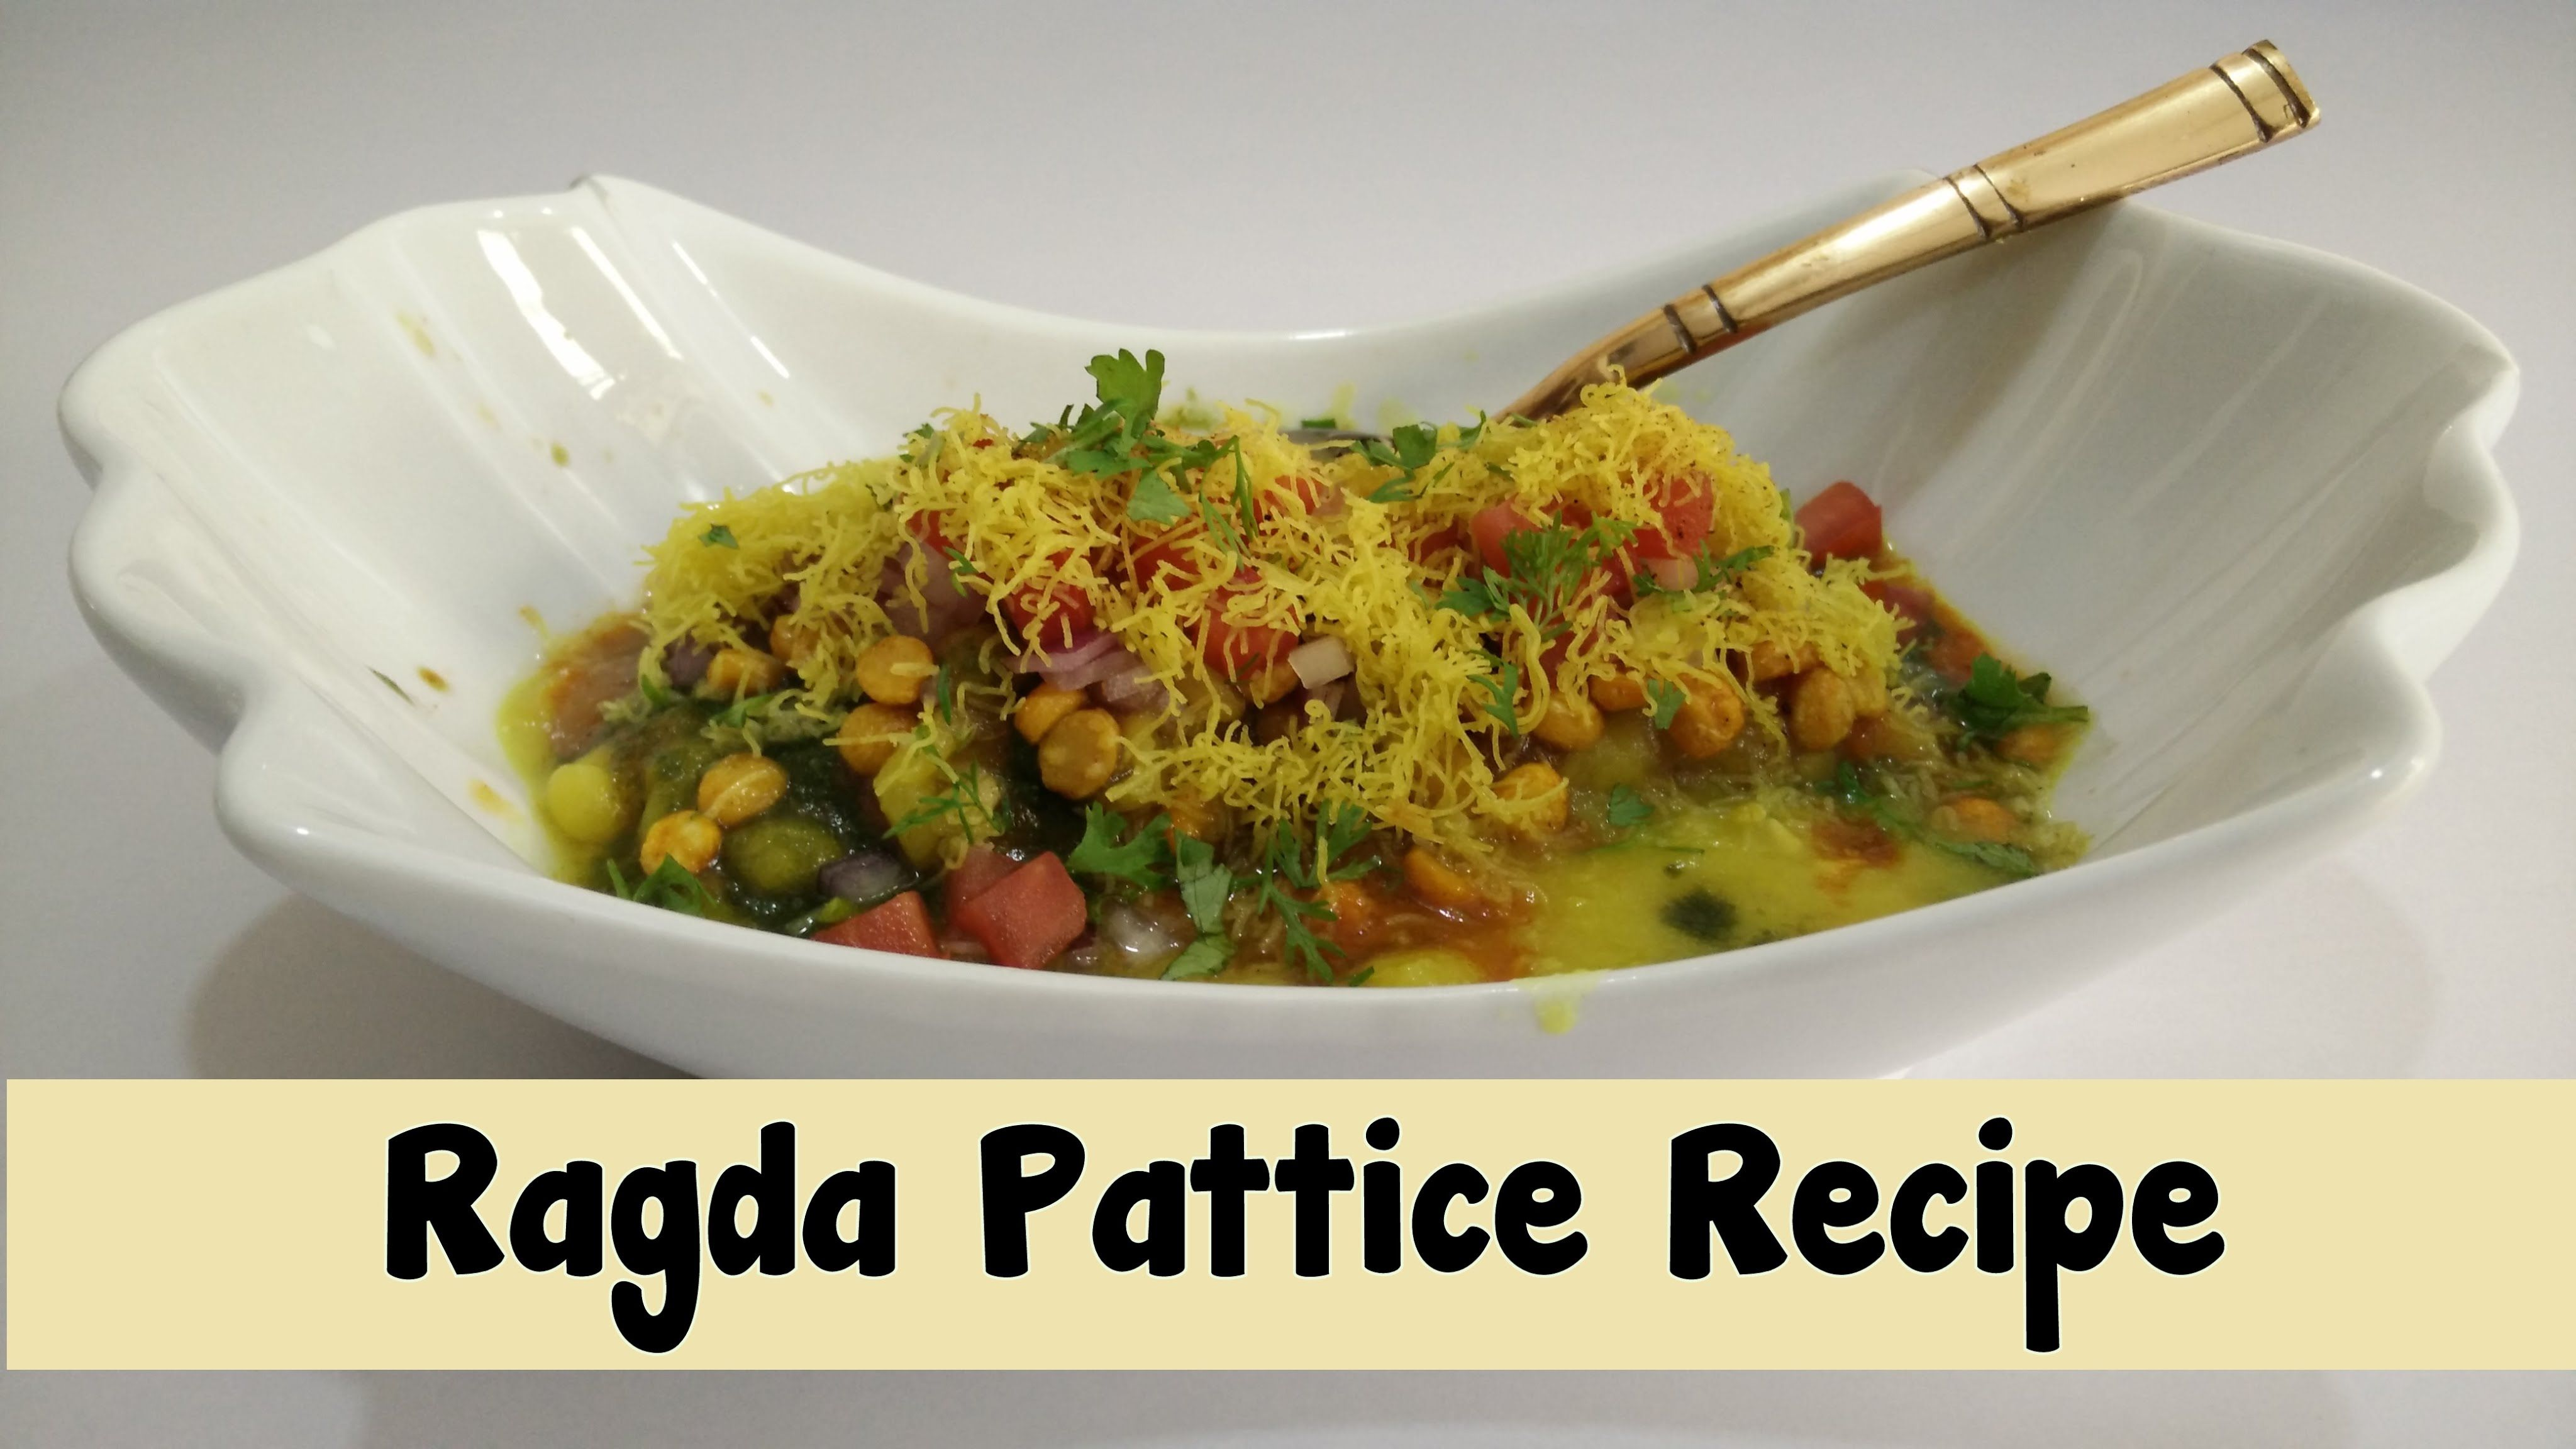 Ragda pattice recipe mumbai street food ragda pattice is a popular ragda pattice recipe mumbai street food ragda pattice is a popular indian fast food forumfinder Images